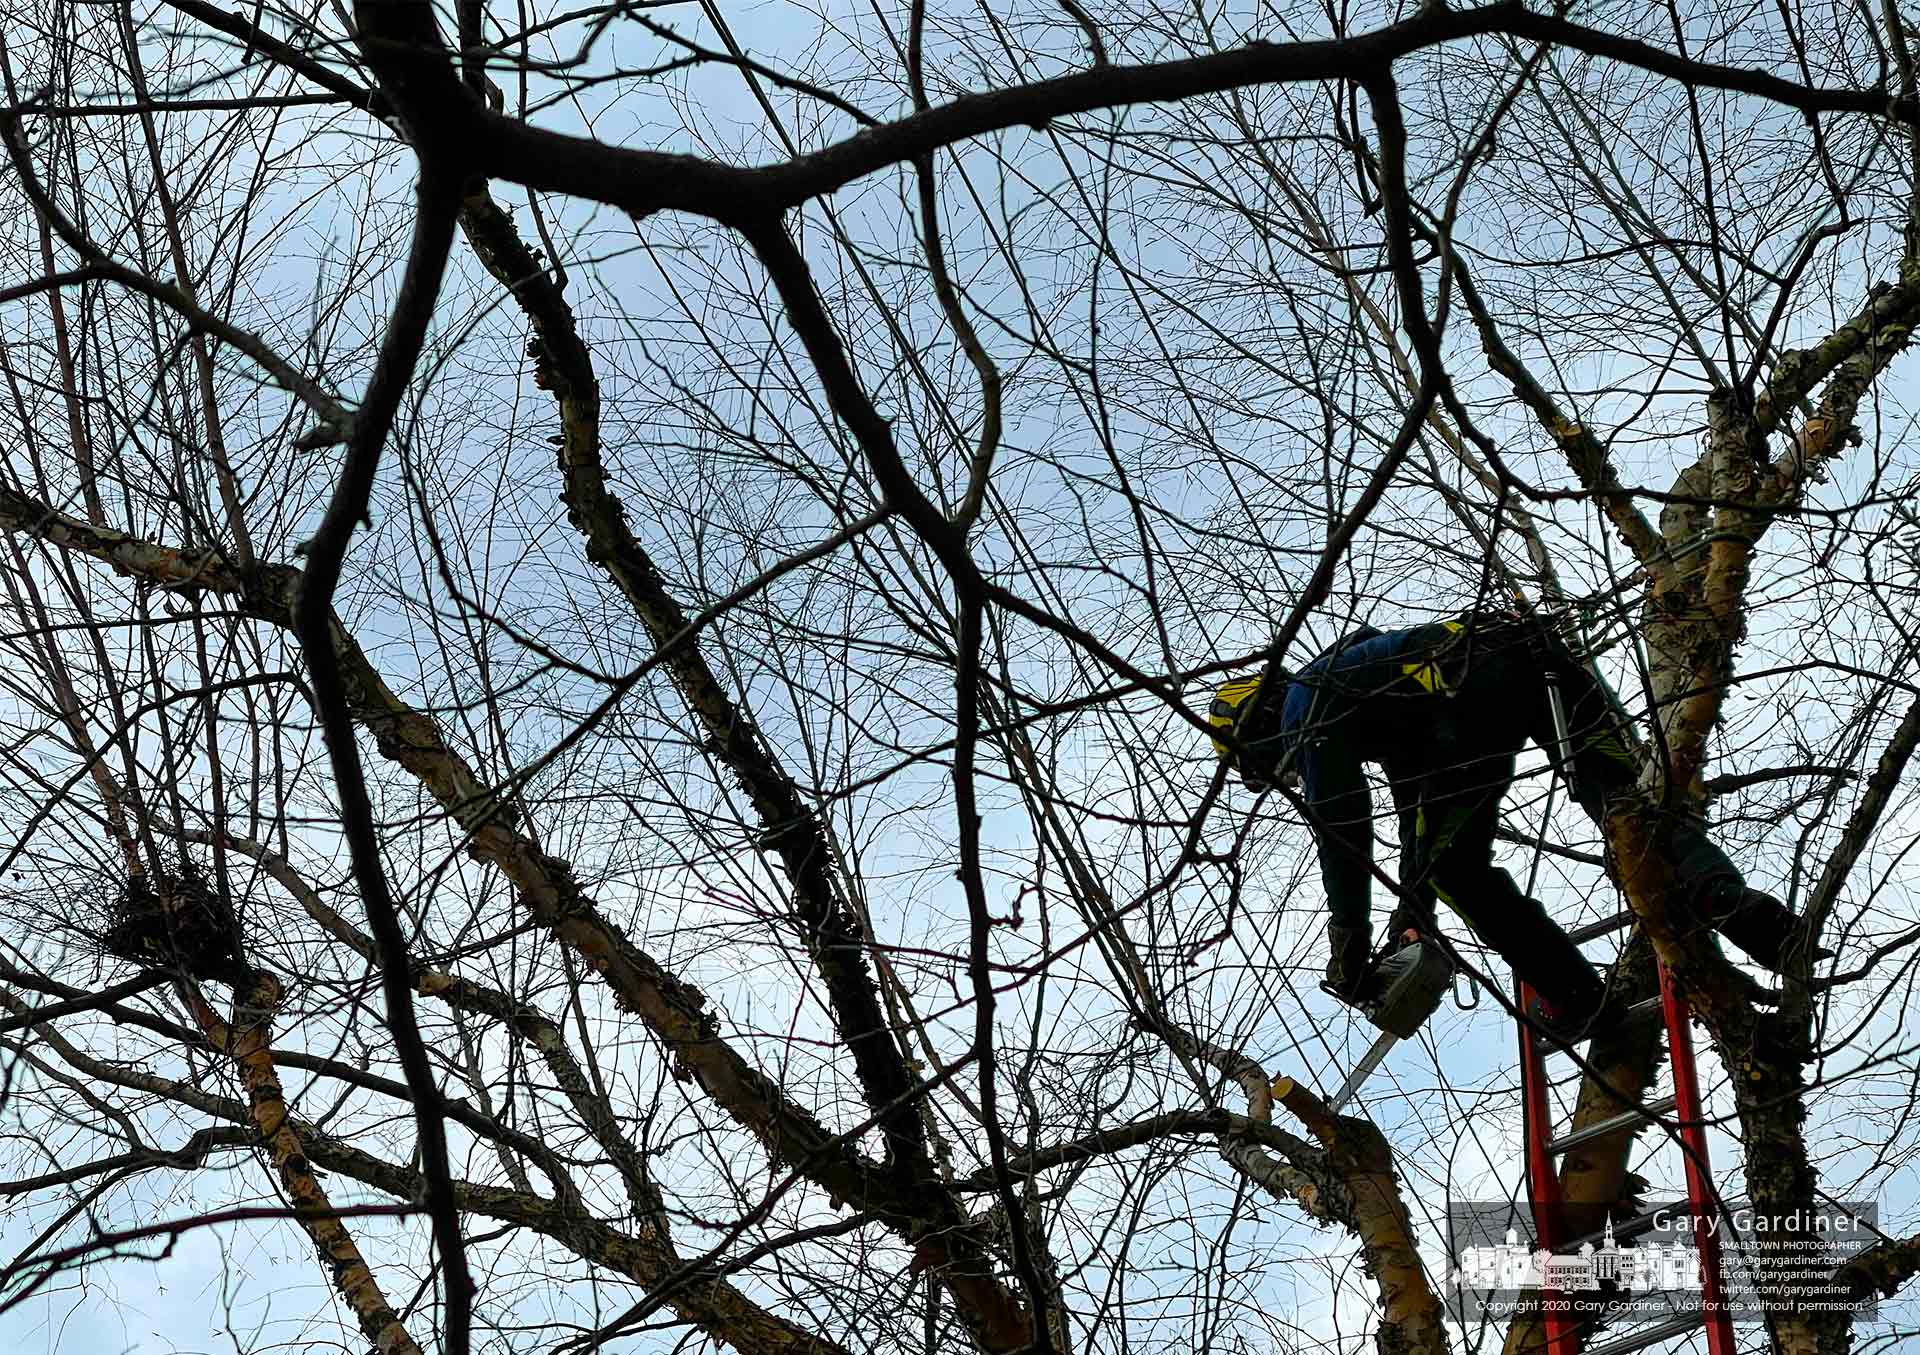 A city arborist is tangled in a mesh of tree limbs as he clears sections of trees from overhead power lines. My Final Photo for Jan. 22, 2021.